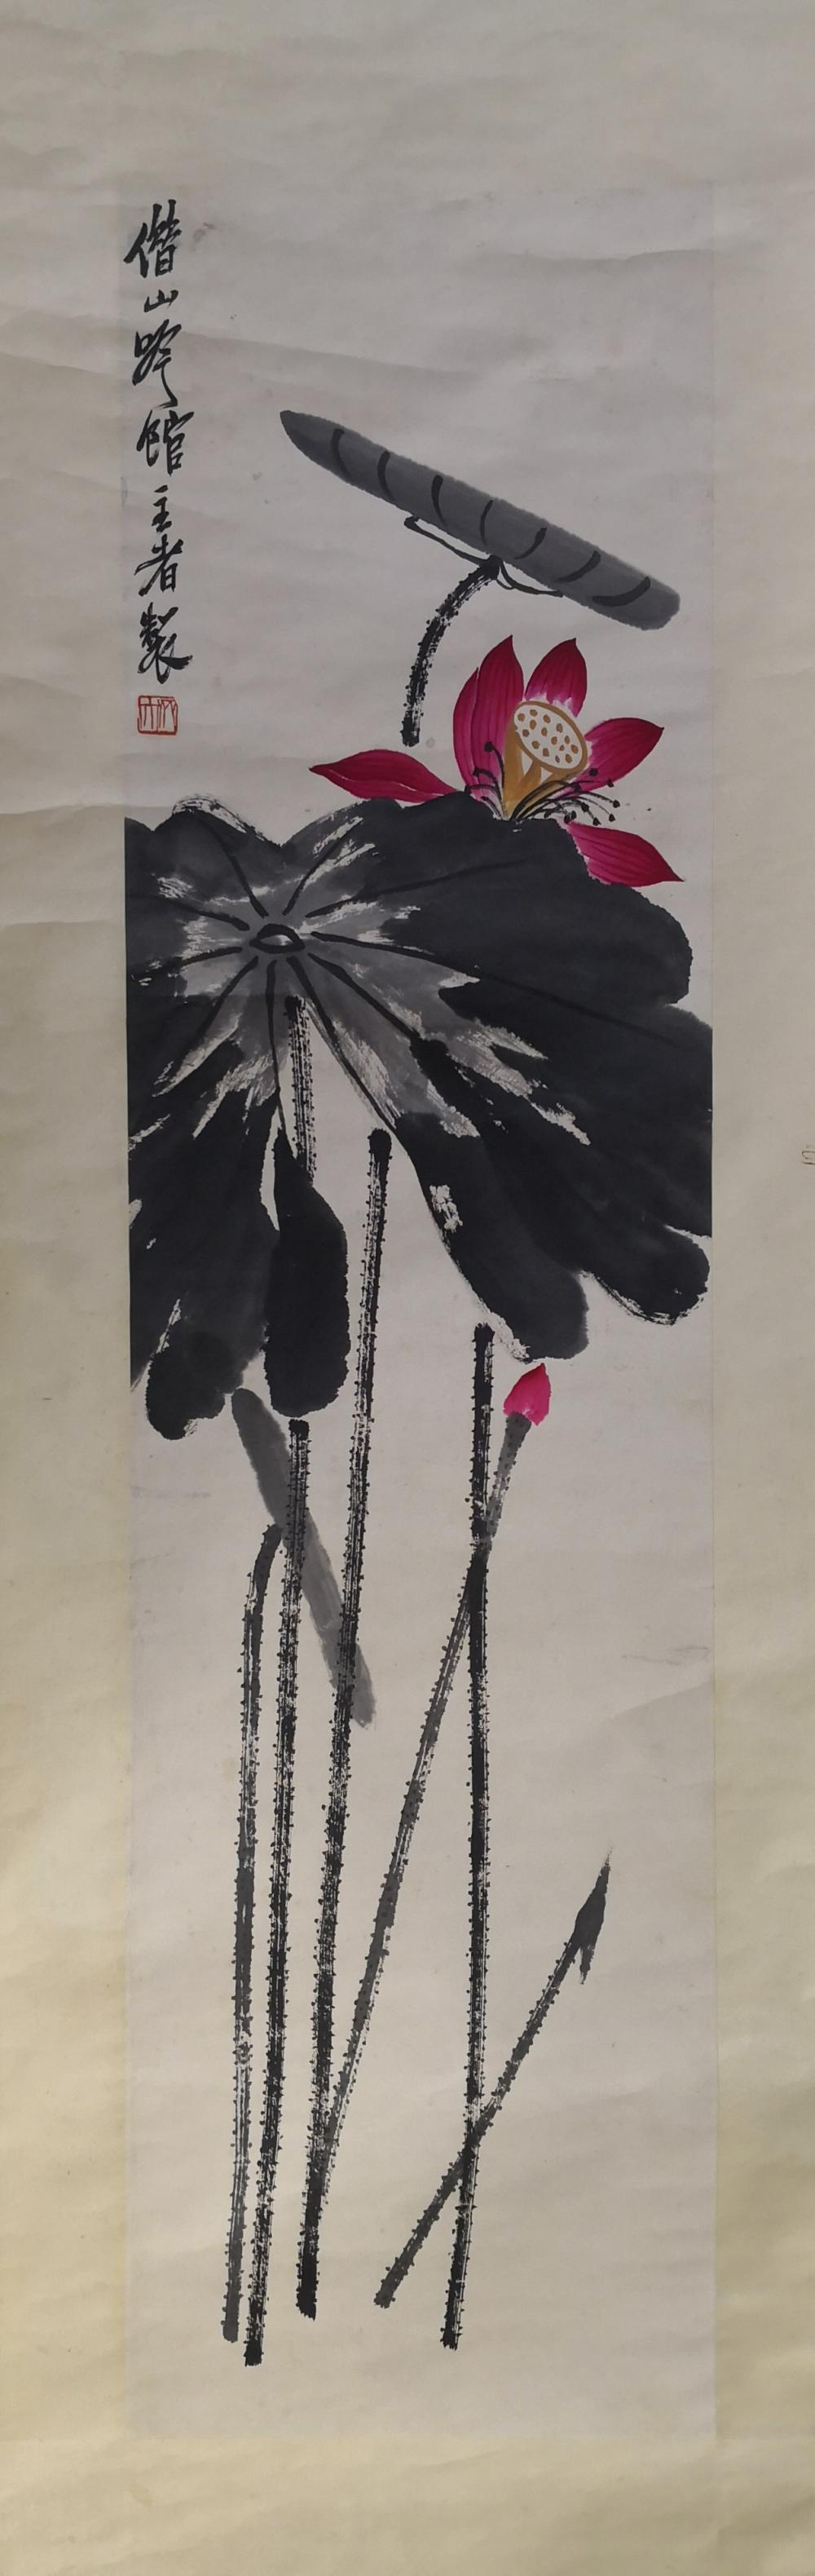 A CHINESE PAINTING BY QI BAISHI